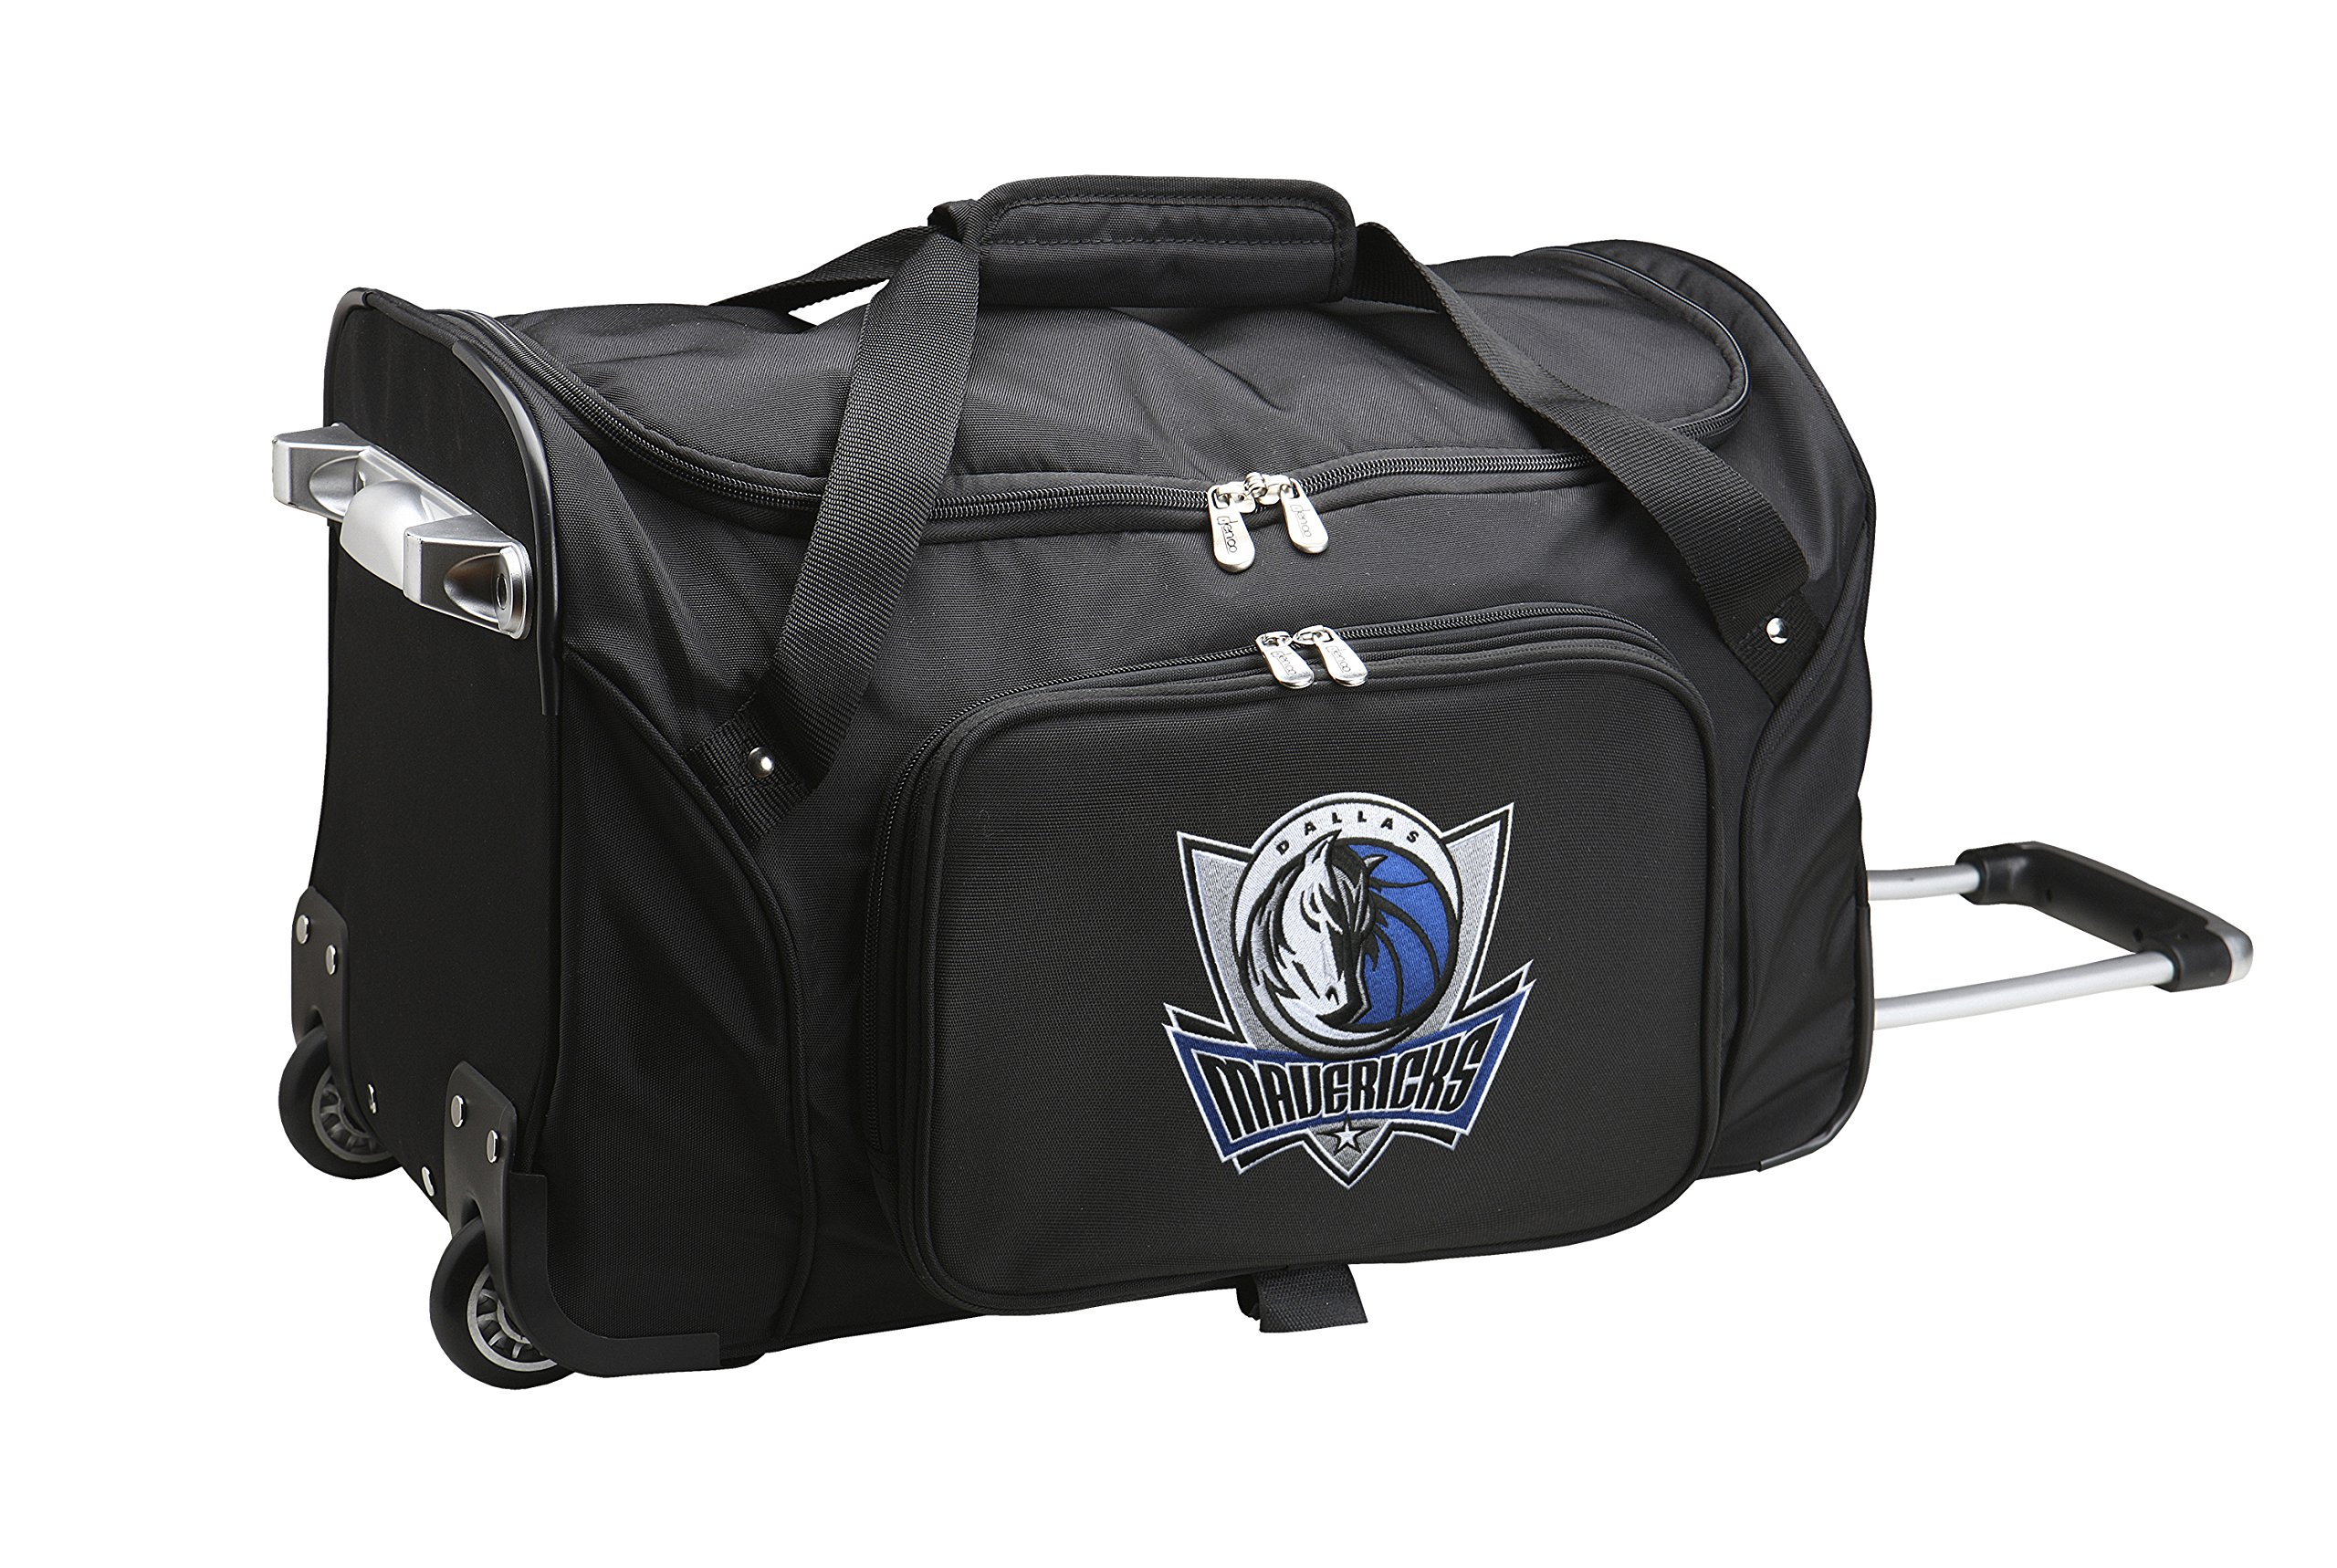 NBA Dallas Mavericks Wheeled Duffle Bag, 22 x 12 x 5.5'', Black